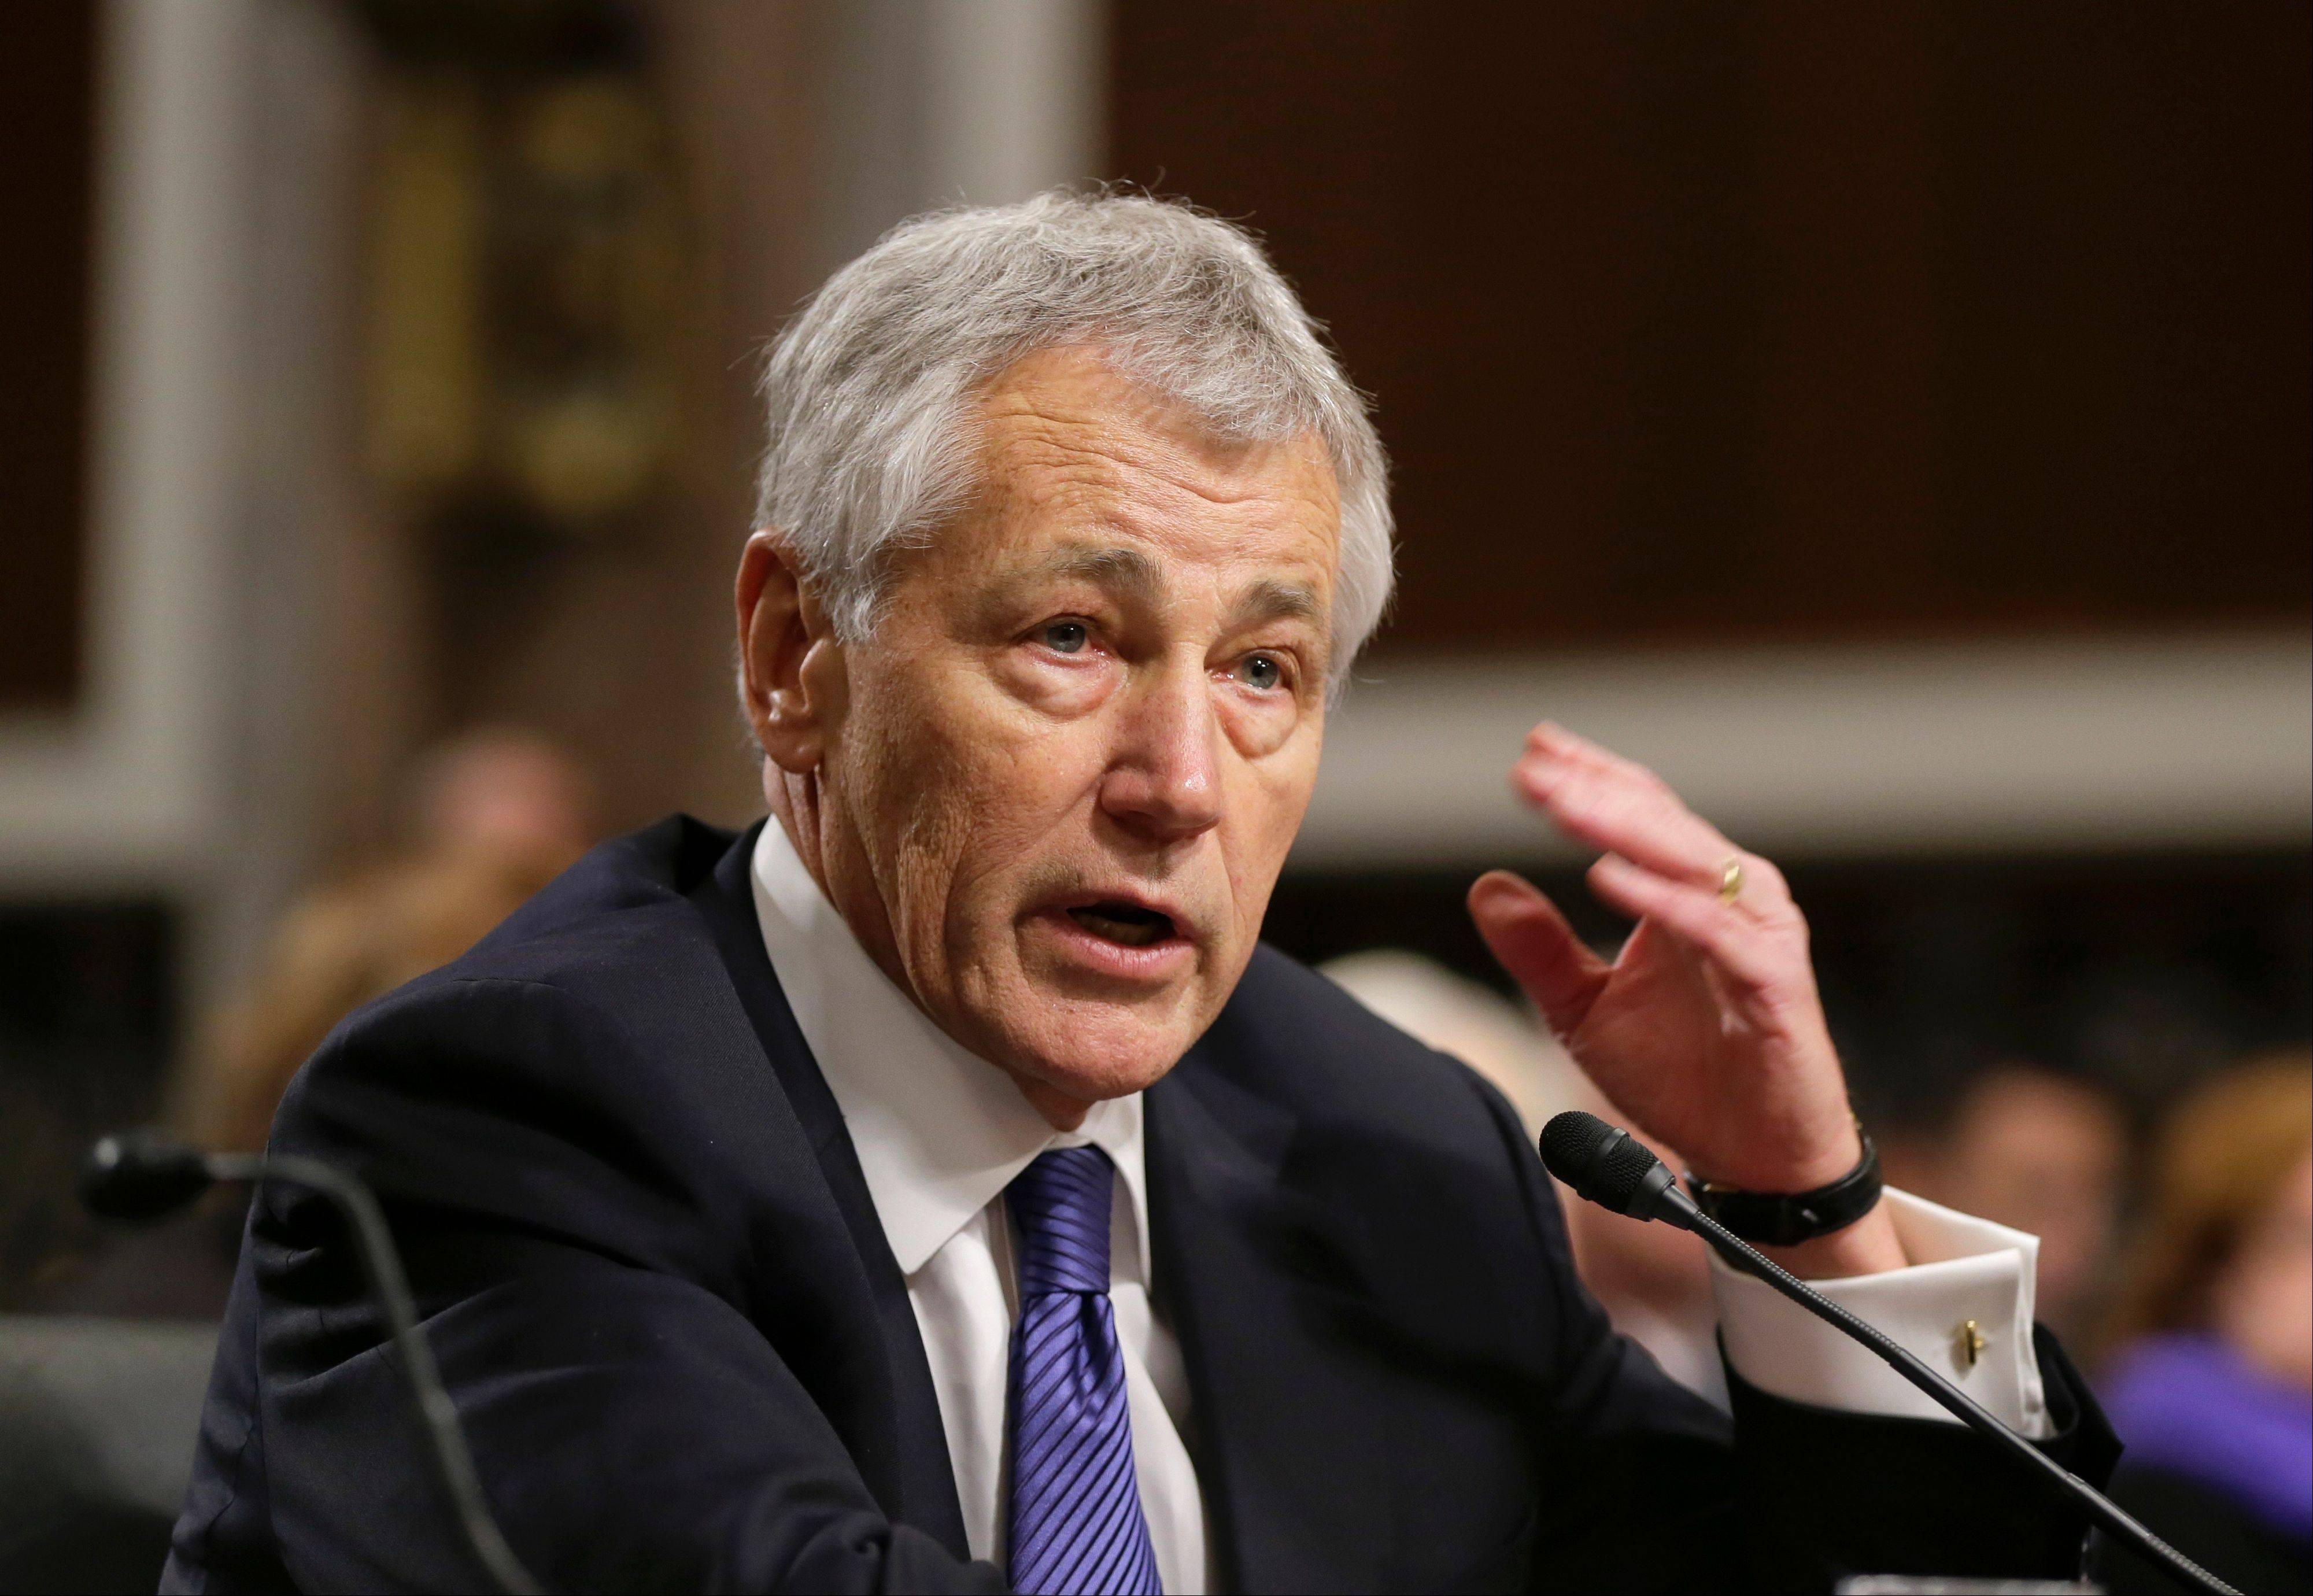 The Senate confirmed Chuck Hagel as secretary of defense after weeks of partisan acrimony over President Barack Obama's choice to head the Pentagon in a time of budget-cutting and evolving threats from terrorism to cyber warfare.